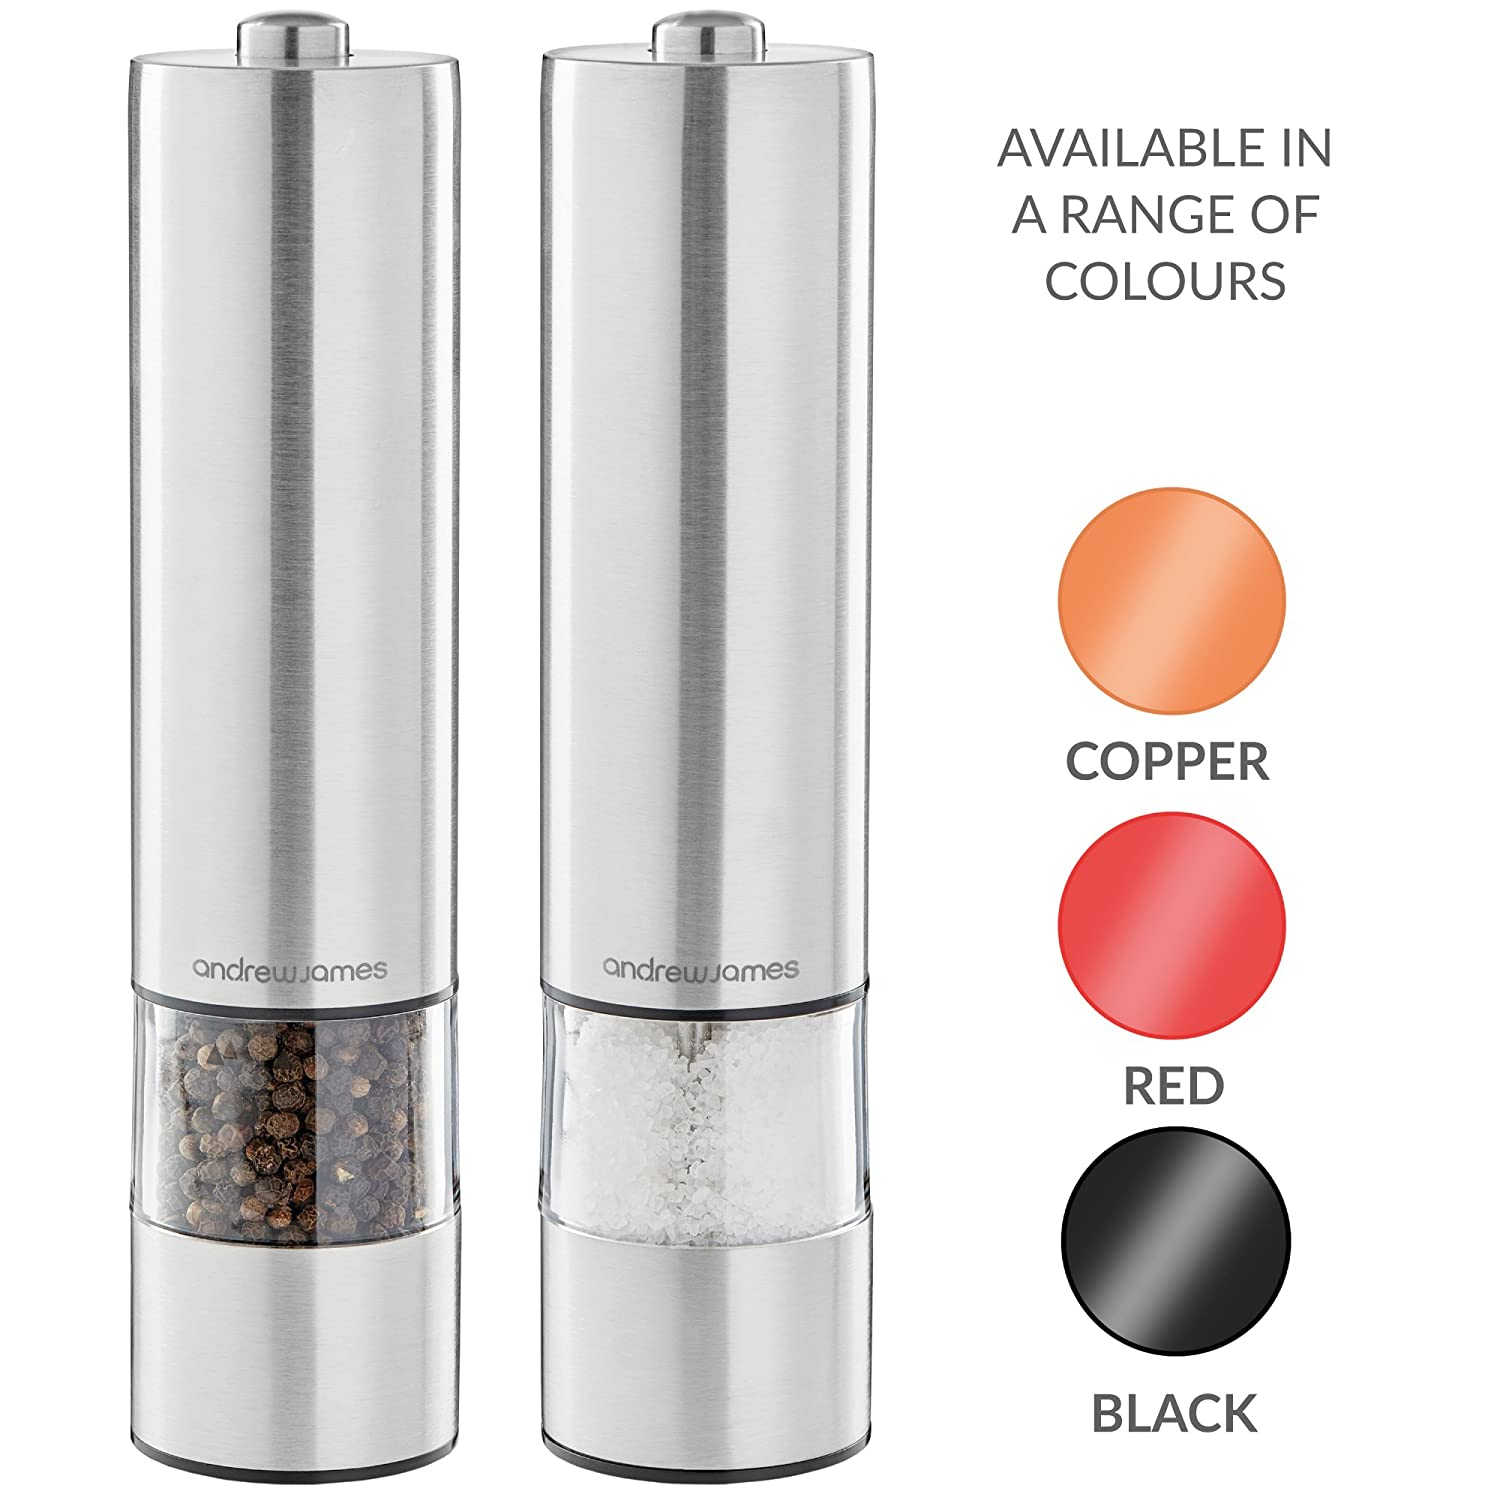 Andrew James Electric Salt /& Pepper Mill Set with One Touch Operation Battery Operated Grinders /& LED Illuminated Dispensing Adjustable Grinding Plates Refillable 23cm High x 5.5cm Diameter